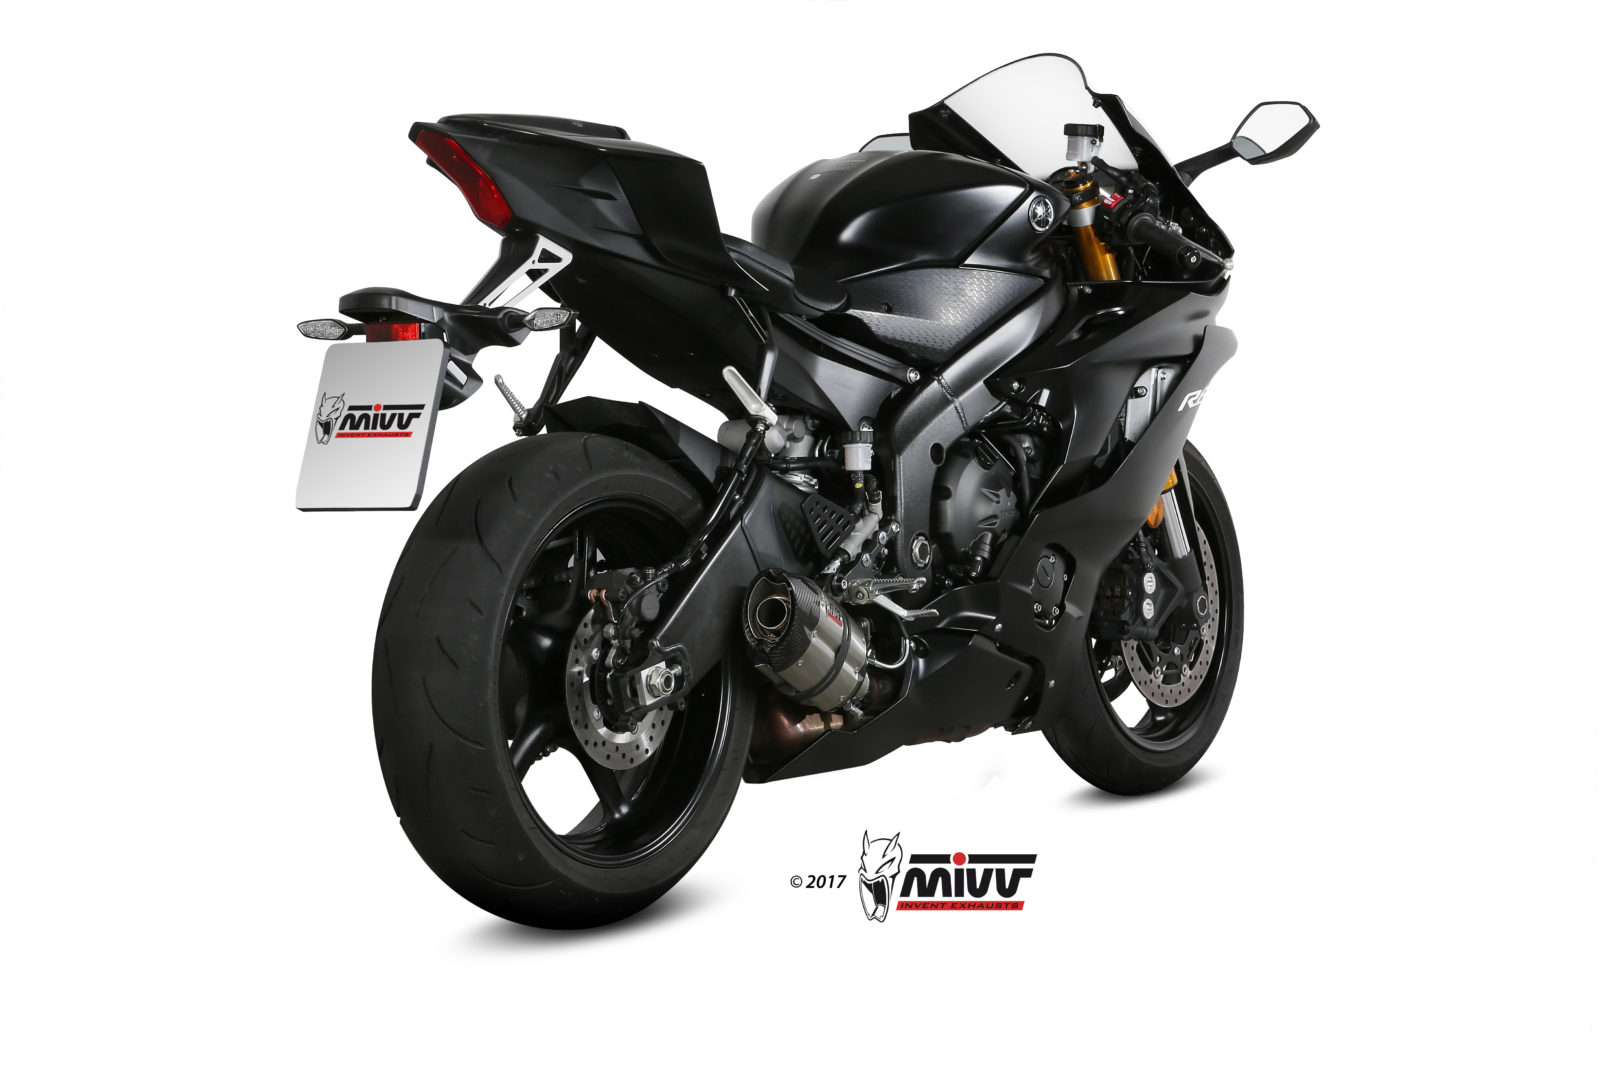 YAMAHA YZF 600 R6 Exhaust Mivv Suono Stainless steel Y.063.L7